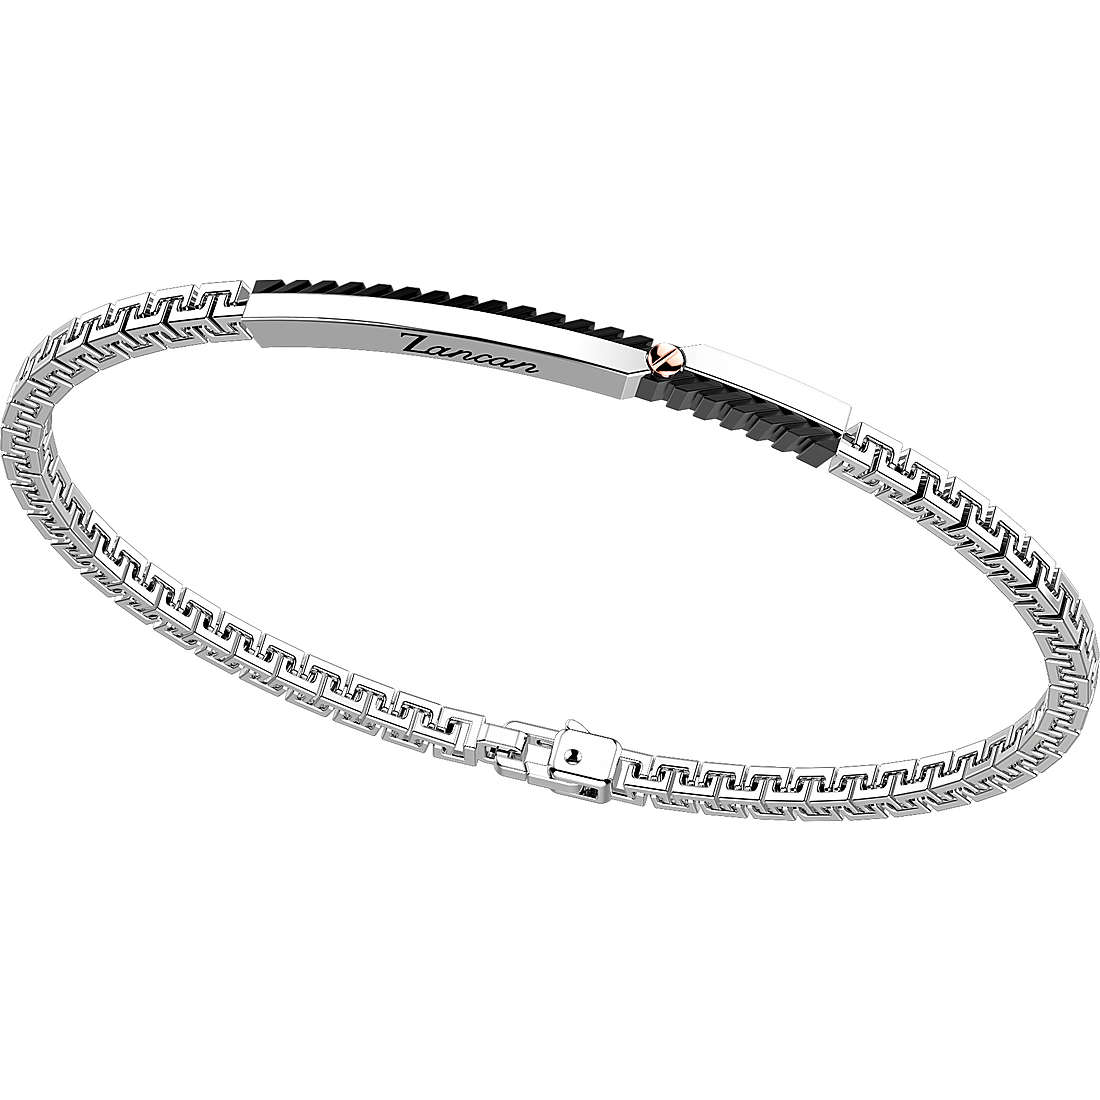 ZANCAN Bracelet with plaque and silver ororosacon spinelli black EXB816R